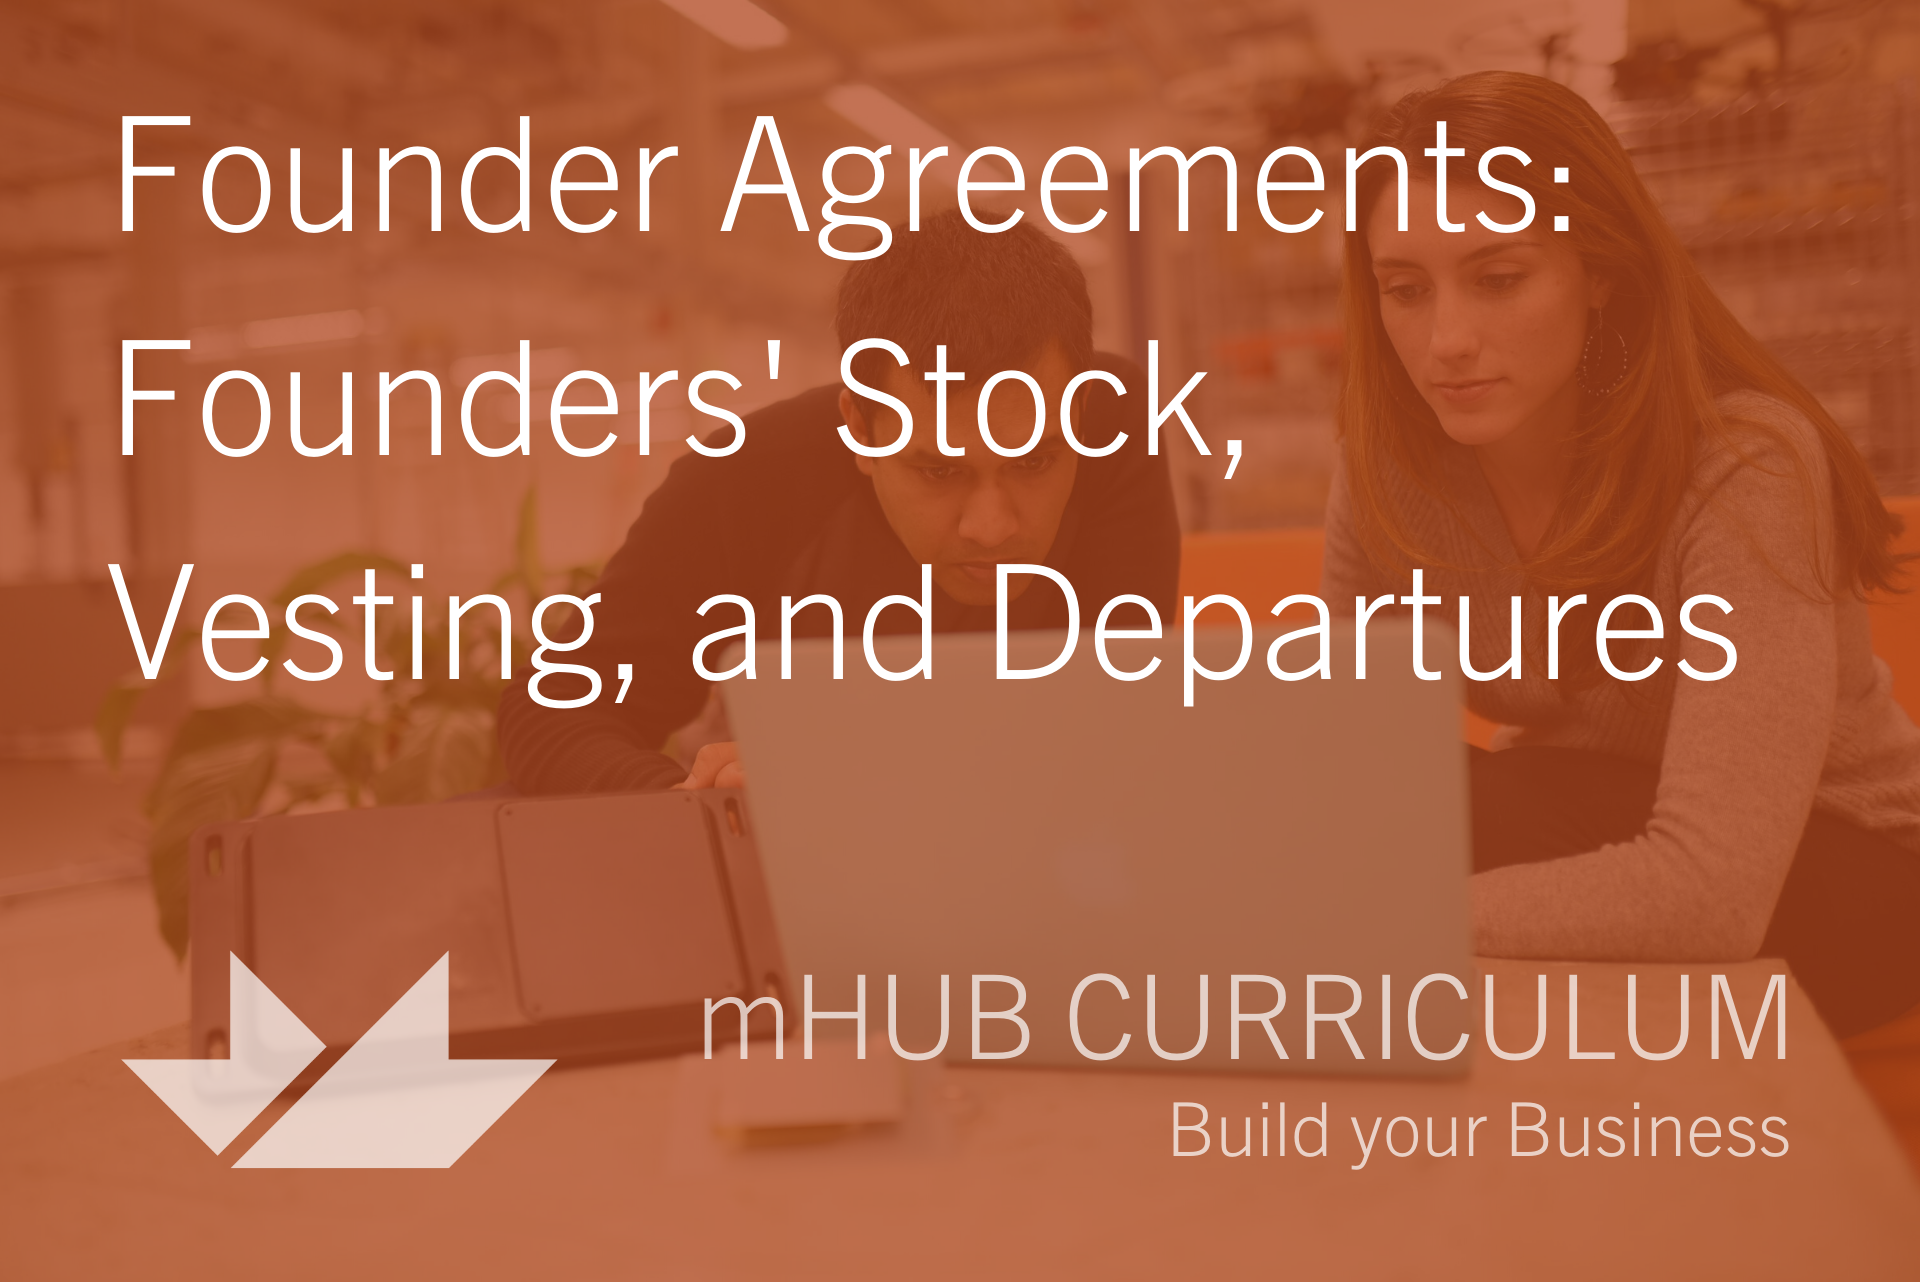 Founder Agreements: Founders Stock, Vesting and Departures